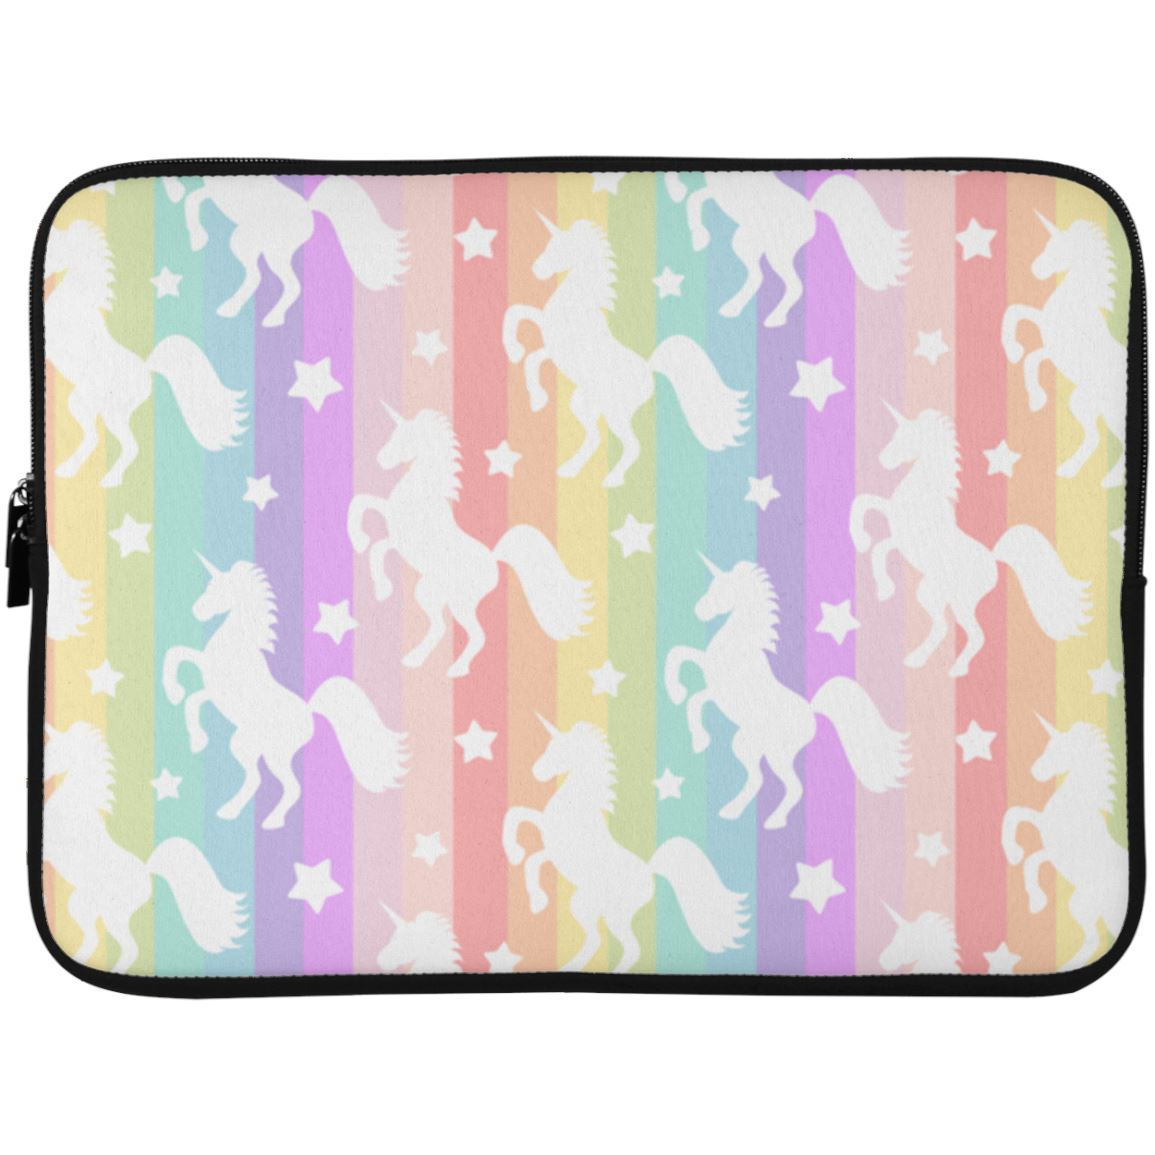 Unicorn Rainbows Laptop Sleeve Apparel Laptop Sleeve - 15 Inch White One Size